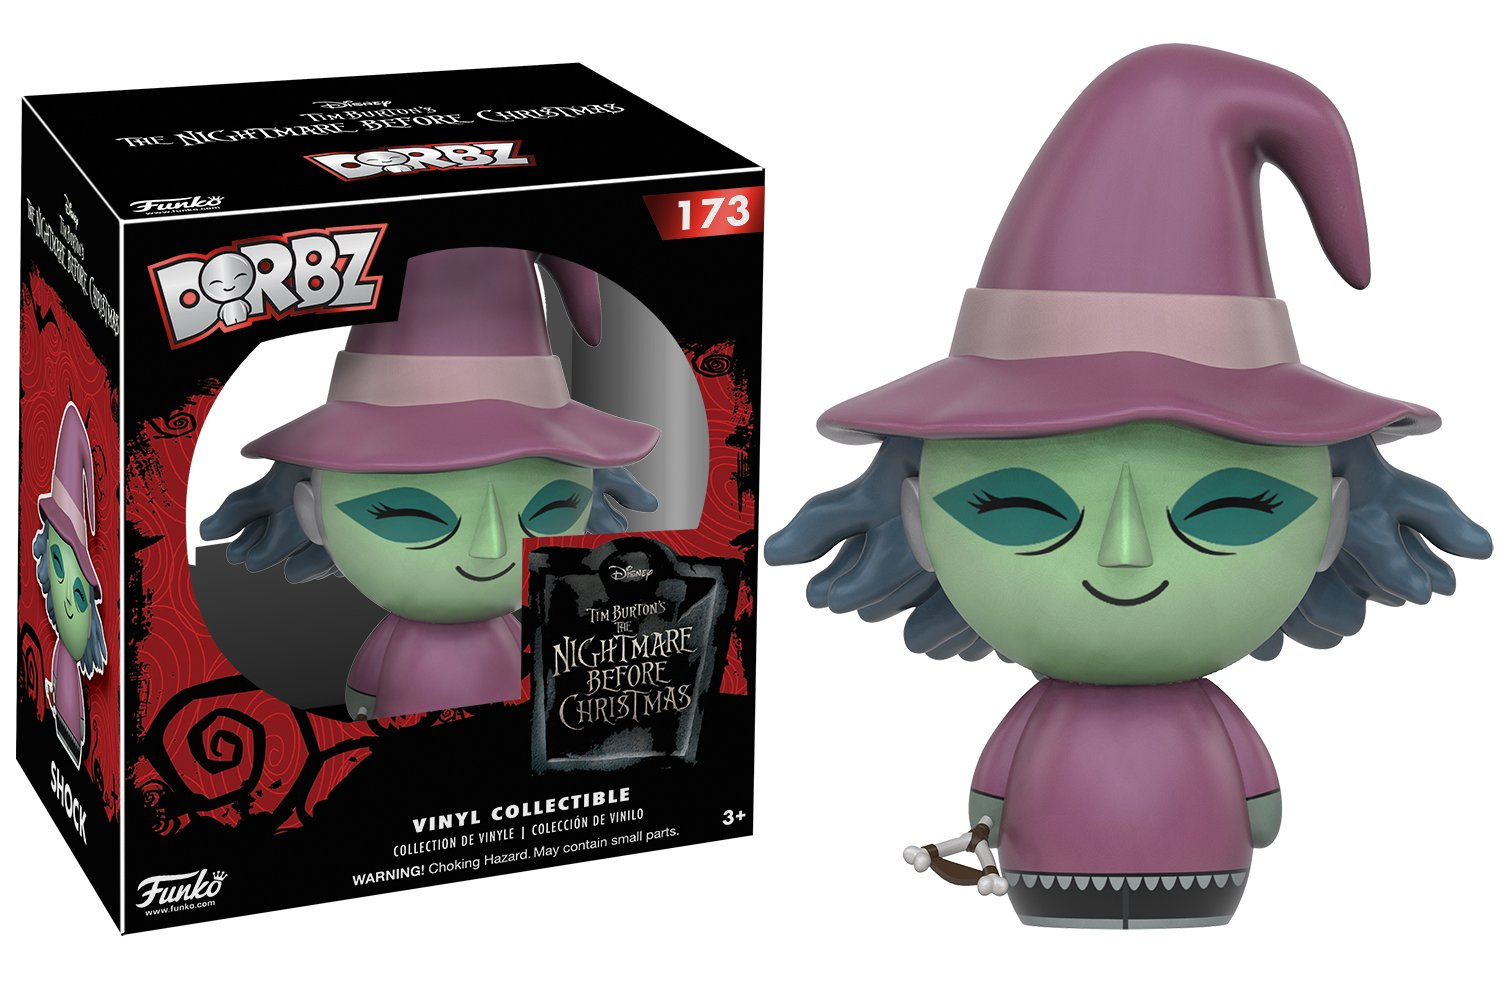 Amazon.com: Funko Dorbz: Nightmare Before Christmas - Shock Action ...